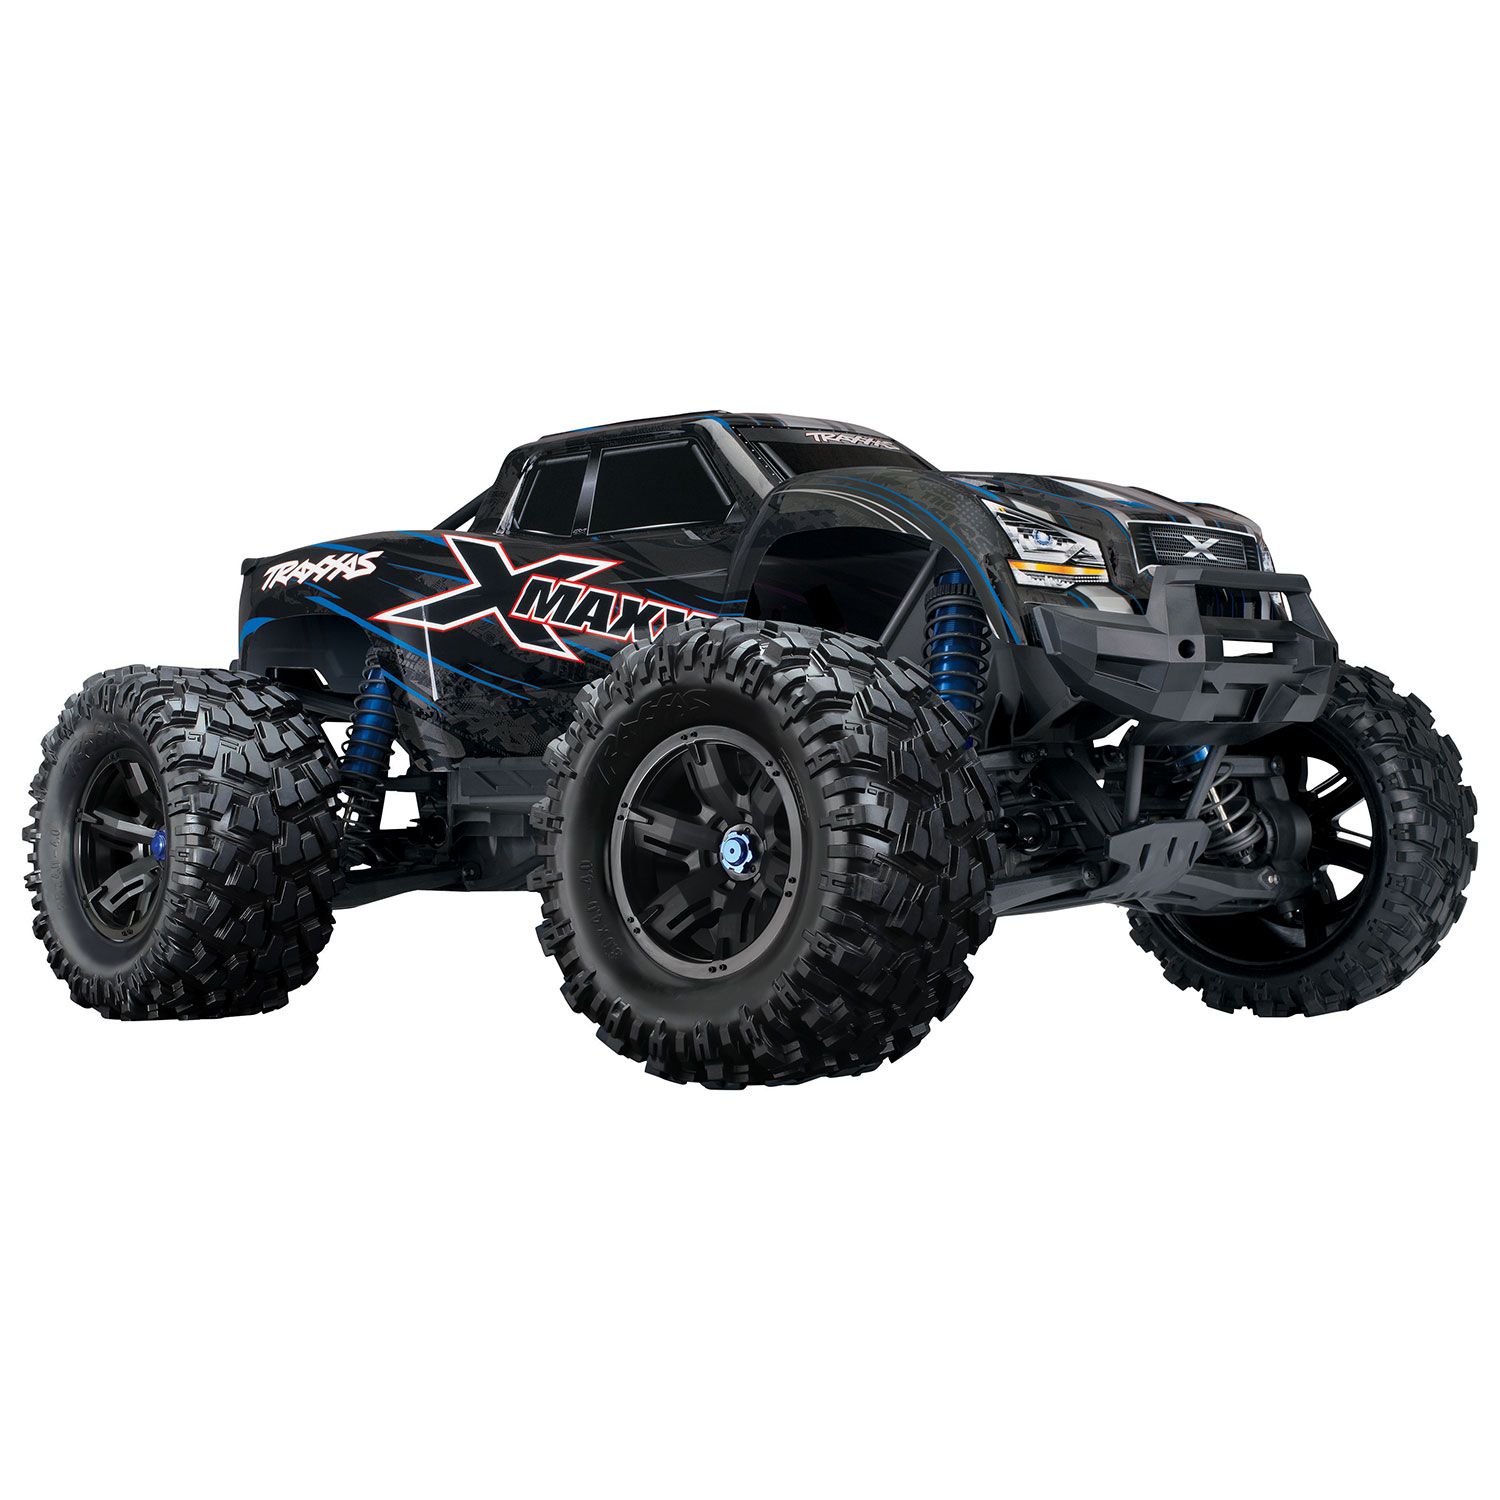 Traxxas X Maxx 8S 4WD 1 5 Scale RC Truck 4 Blue RC Cars & Trucks Best Buy Canada